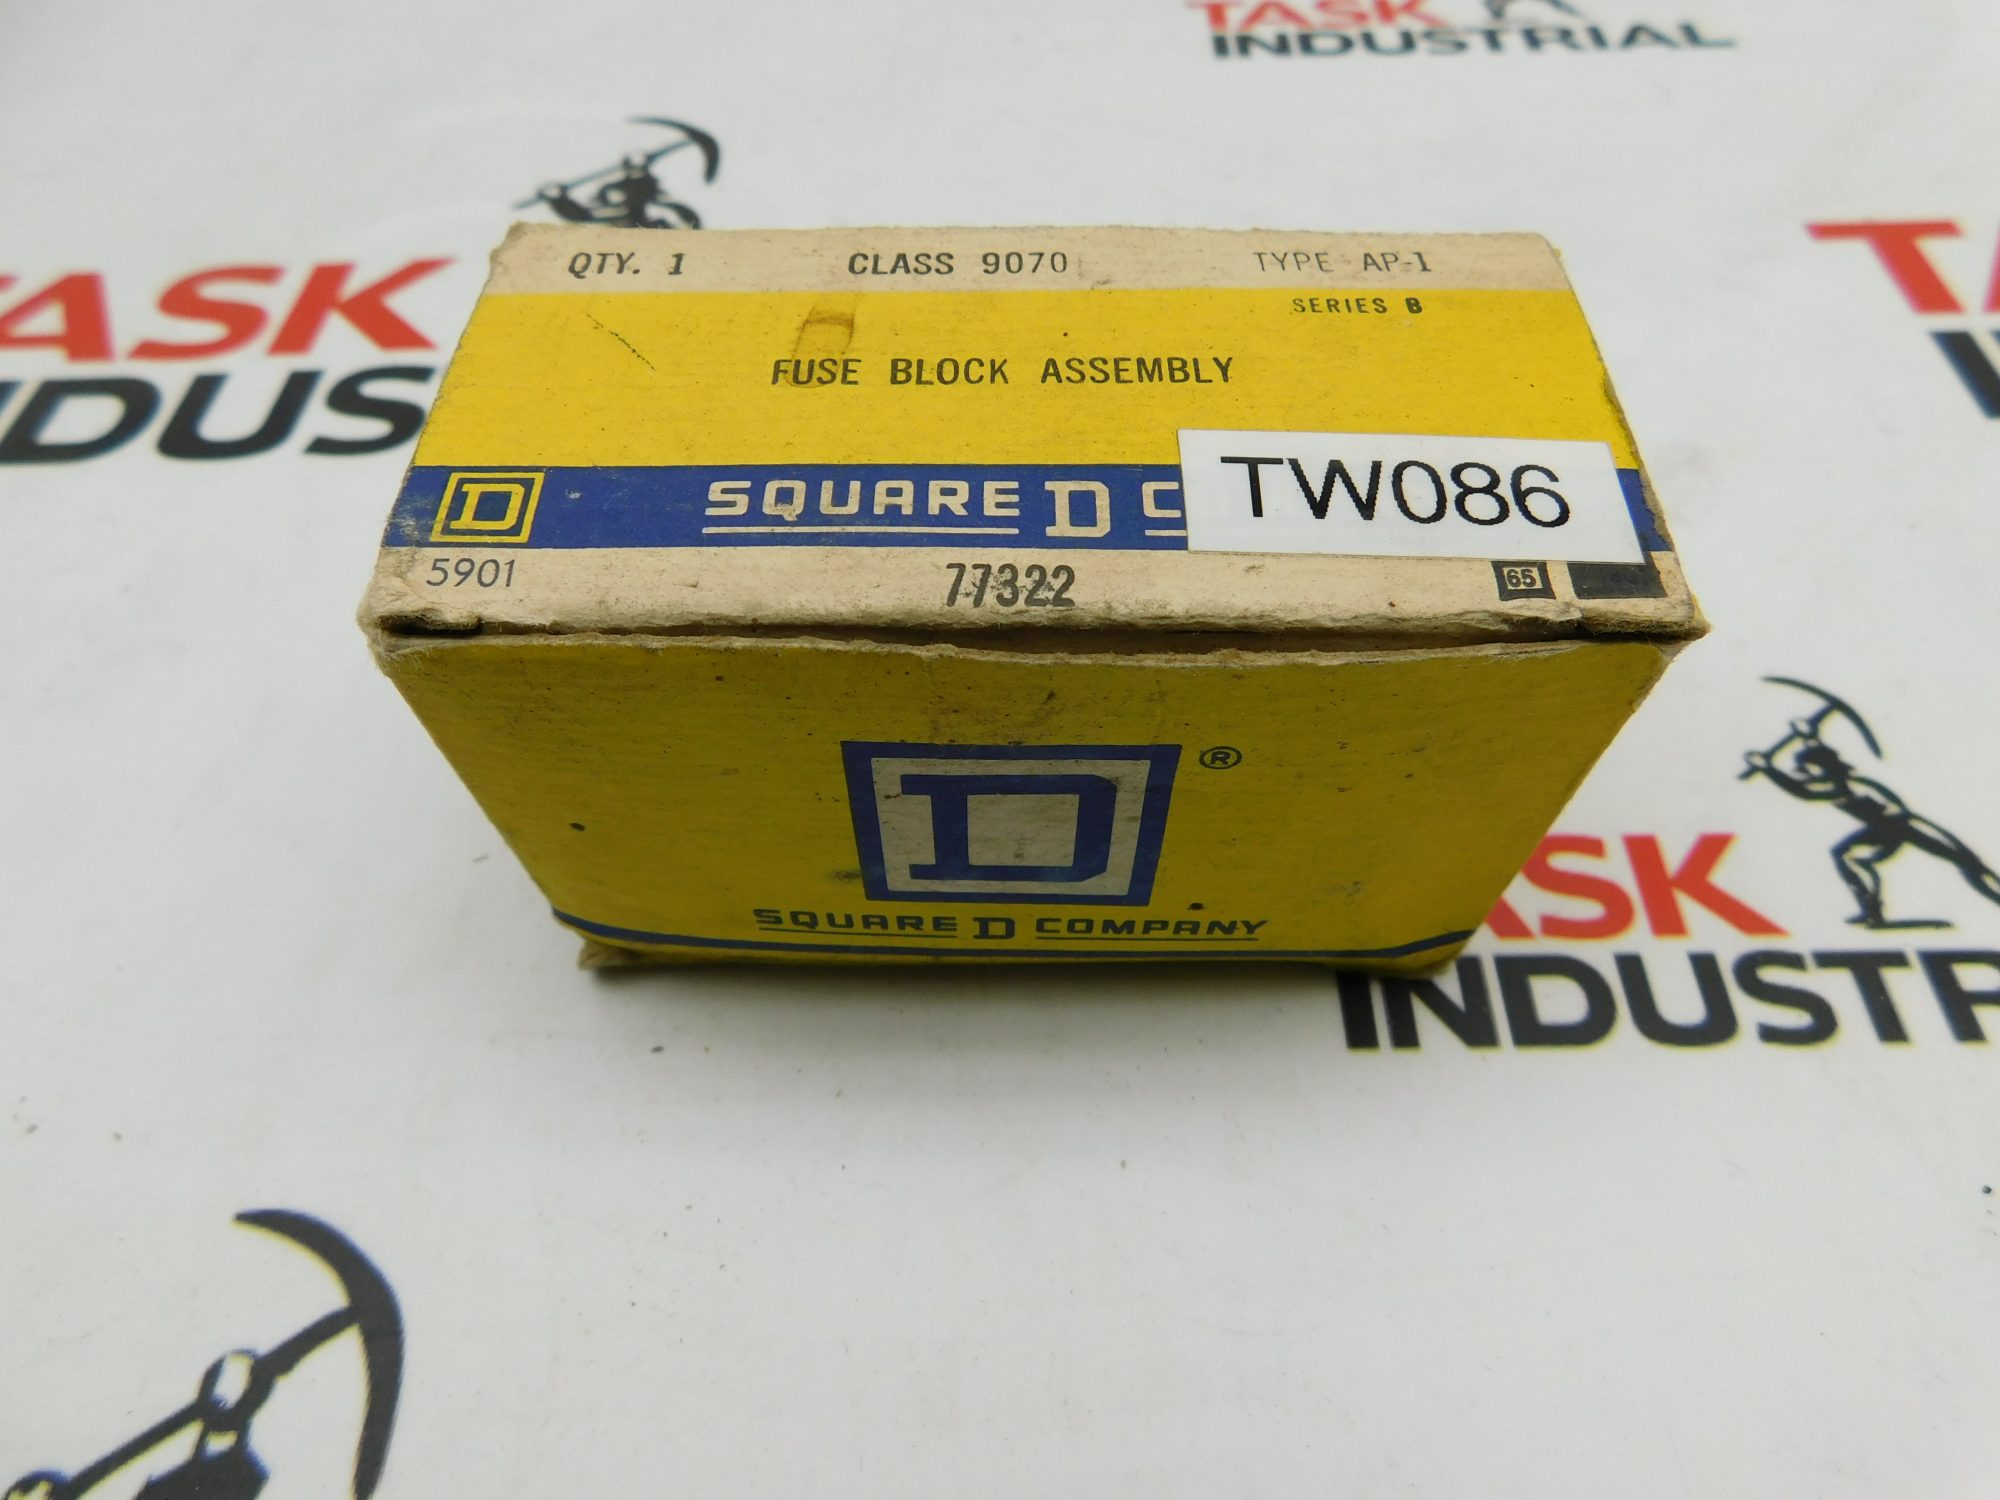 hight resolution of square d 77322 fuse block assembly class 9070 type ap 1